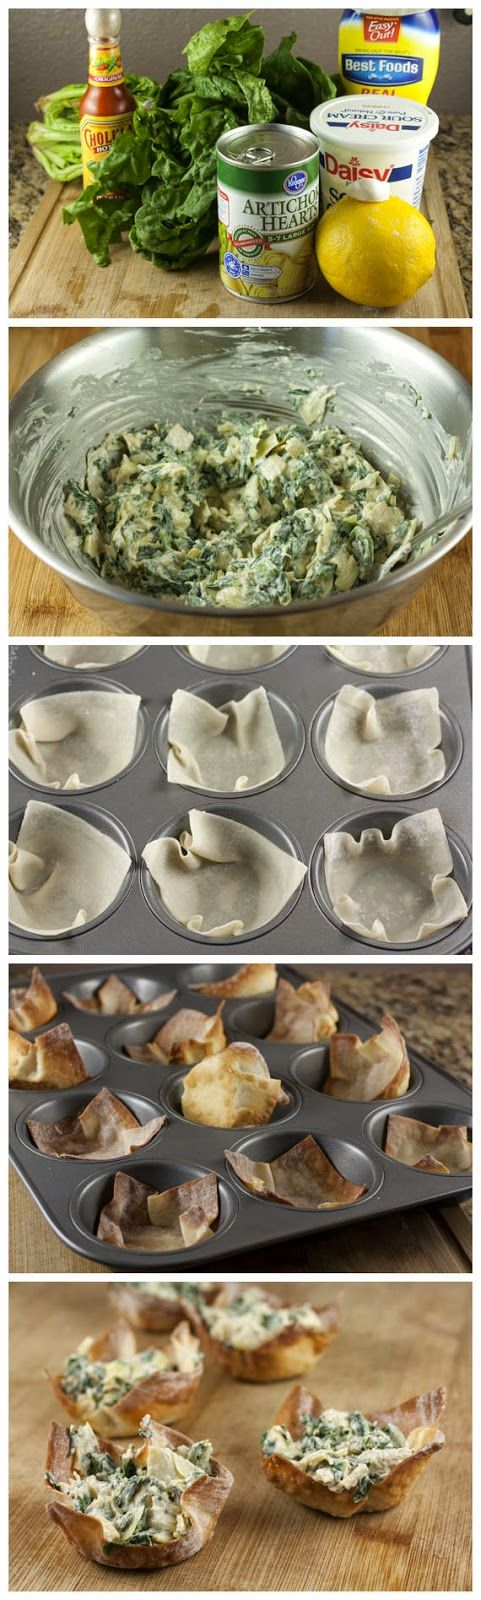 Spinach Artichoke Cups | Recipes to Try | Pinterest